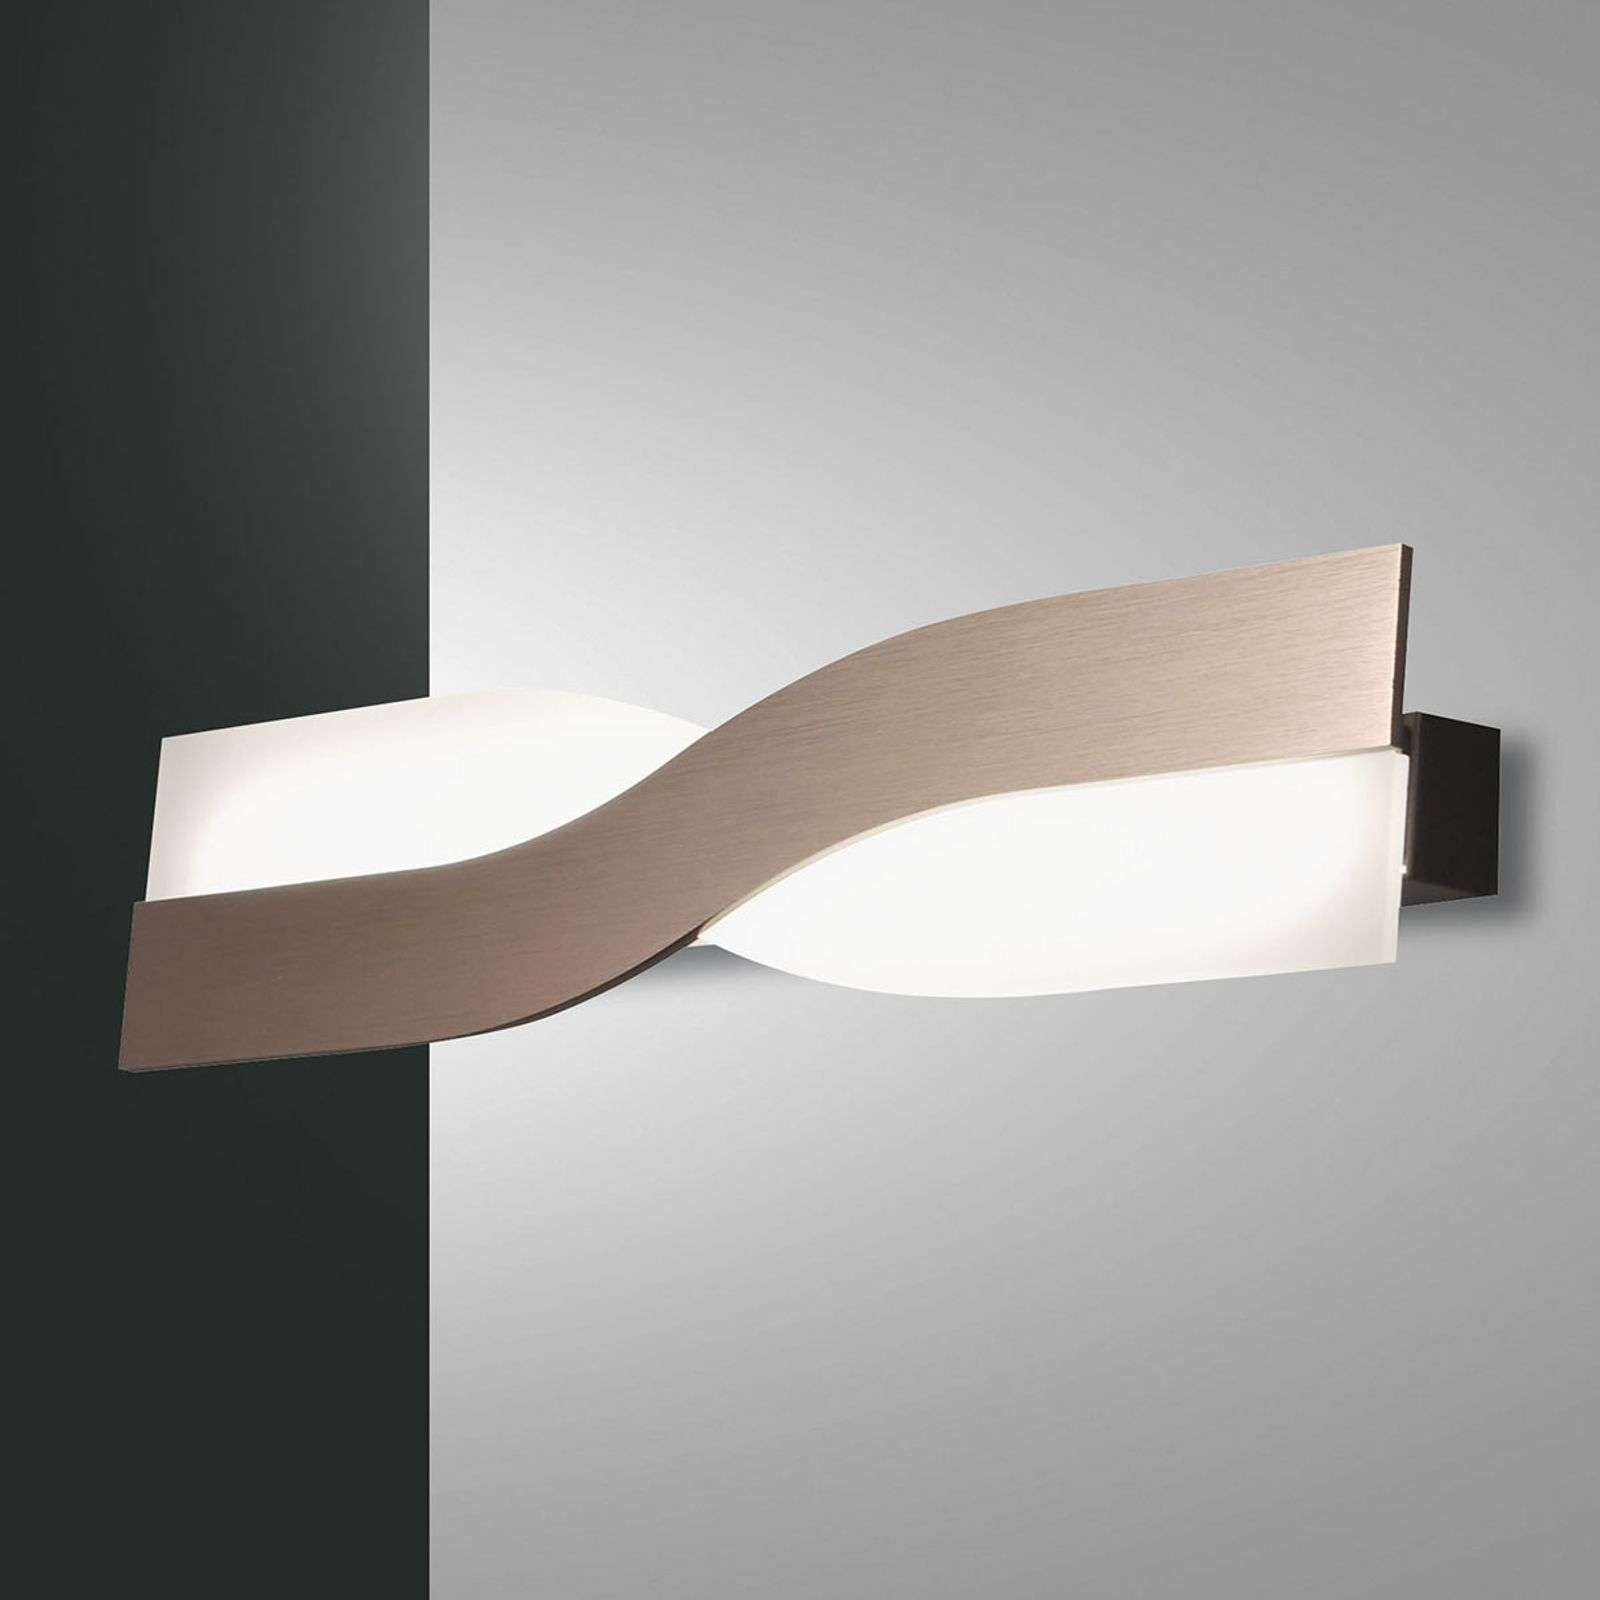 Hermoso aplique LED Riace, 50 cm, bronce